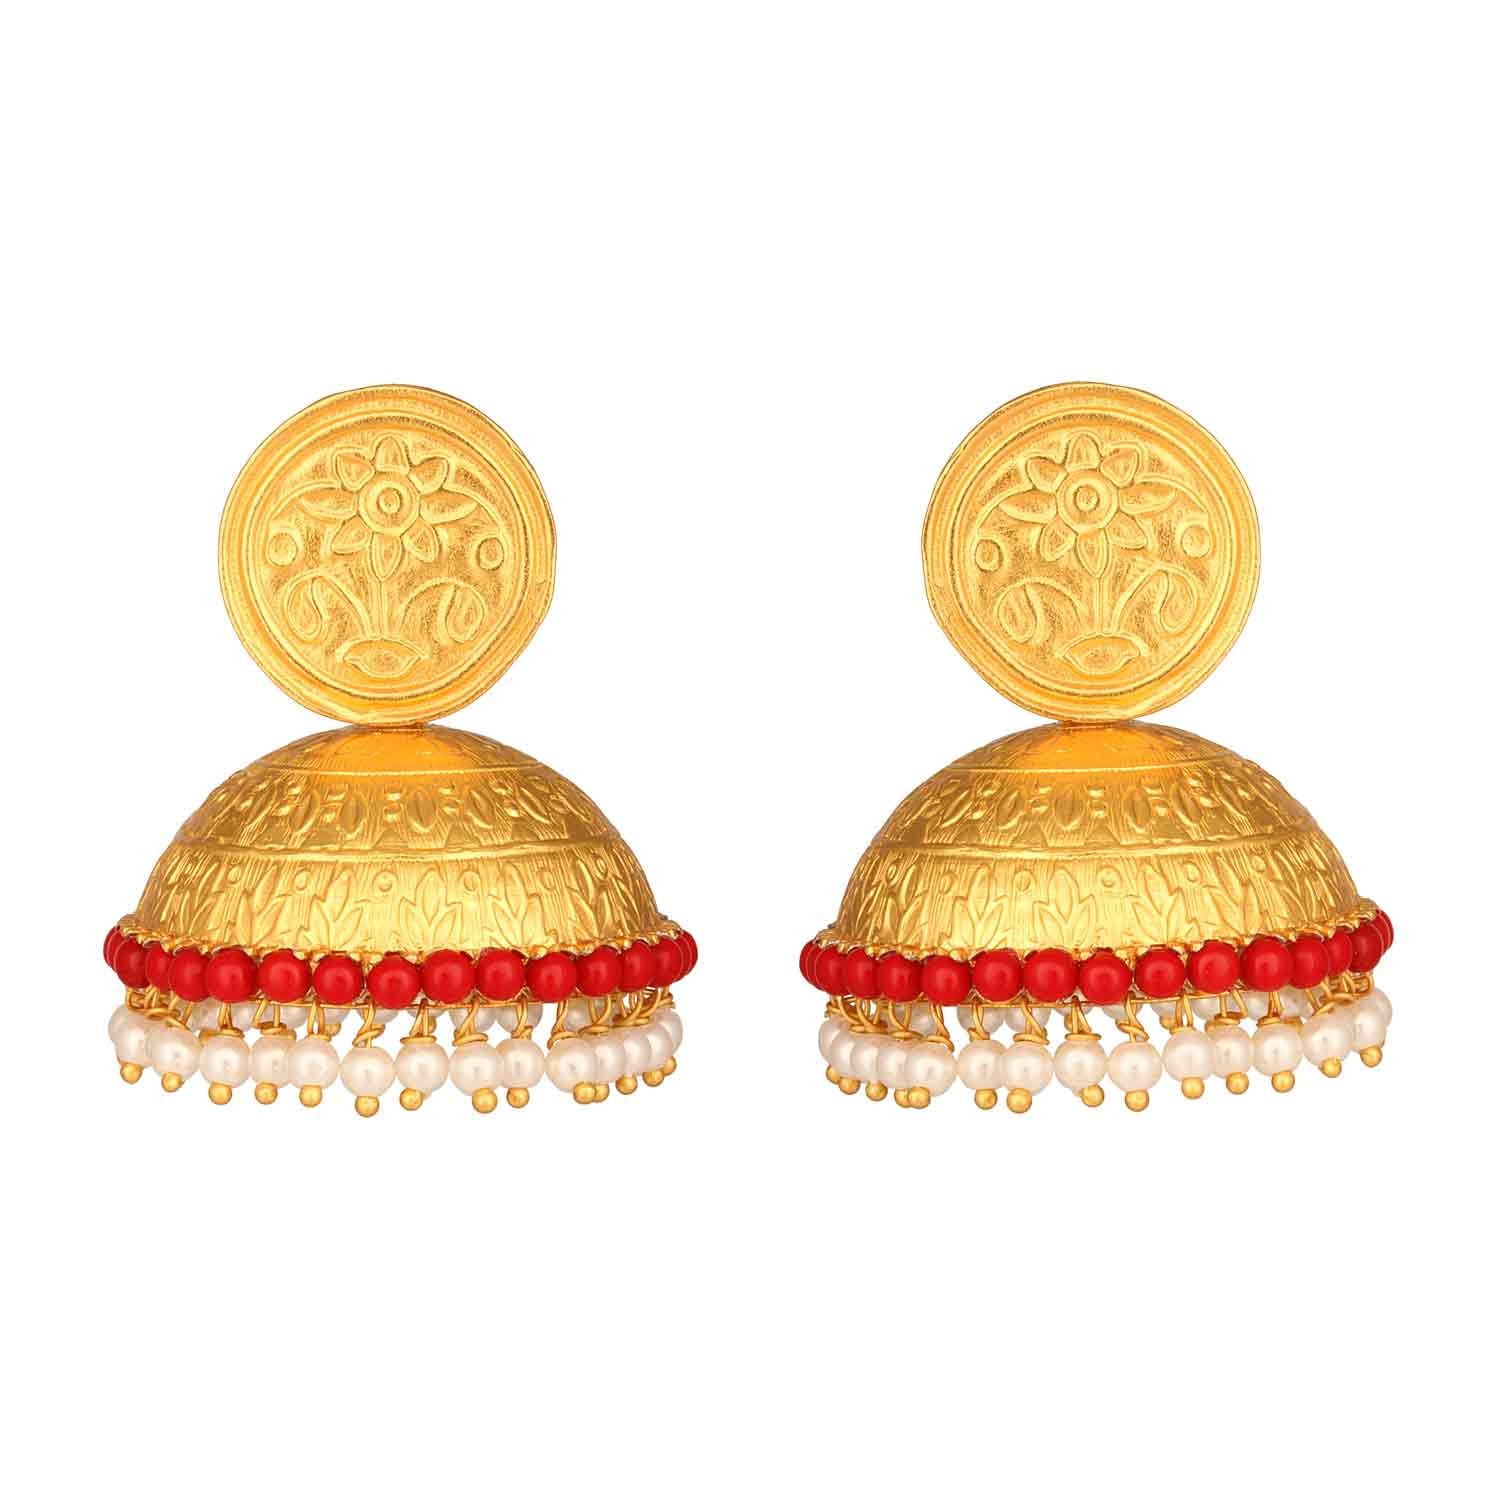 Evergreen Traditional Coral Bell Jhumka Earrings